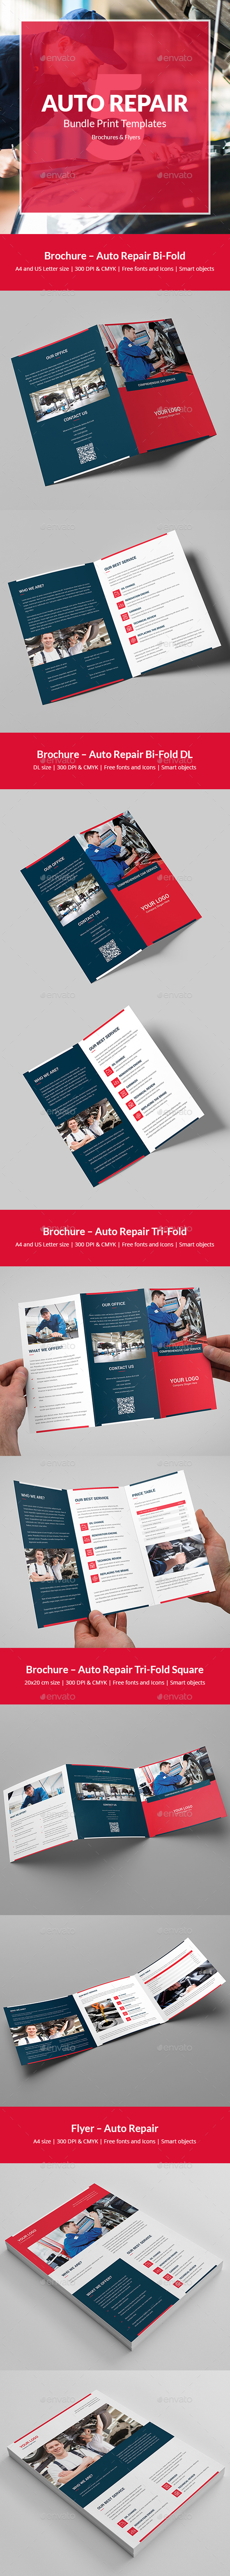 Auto Repair – Bundle Print Templates 5 in 1 - Corporate Brochures